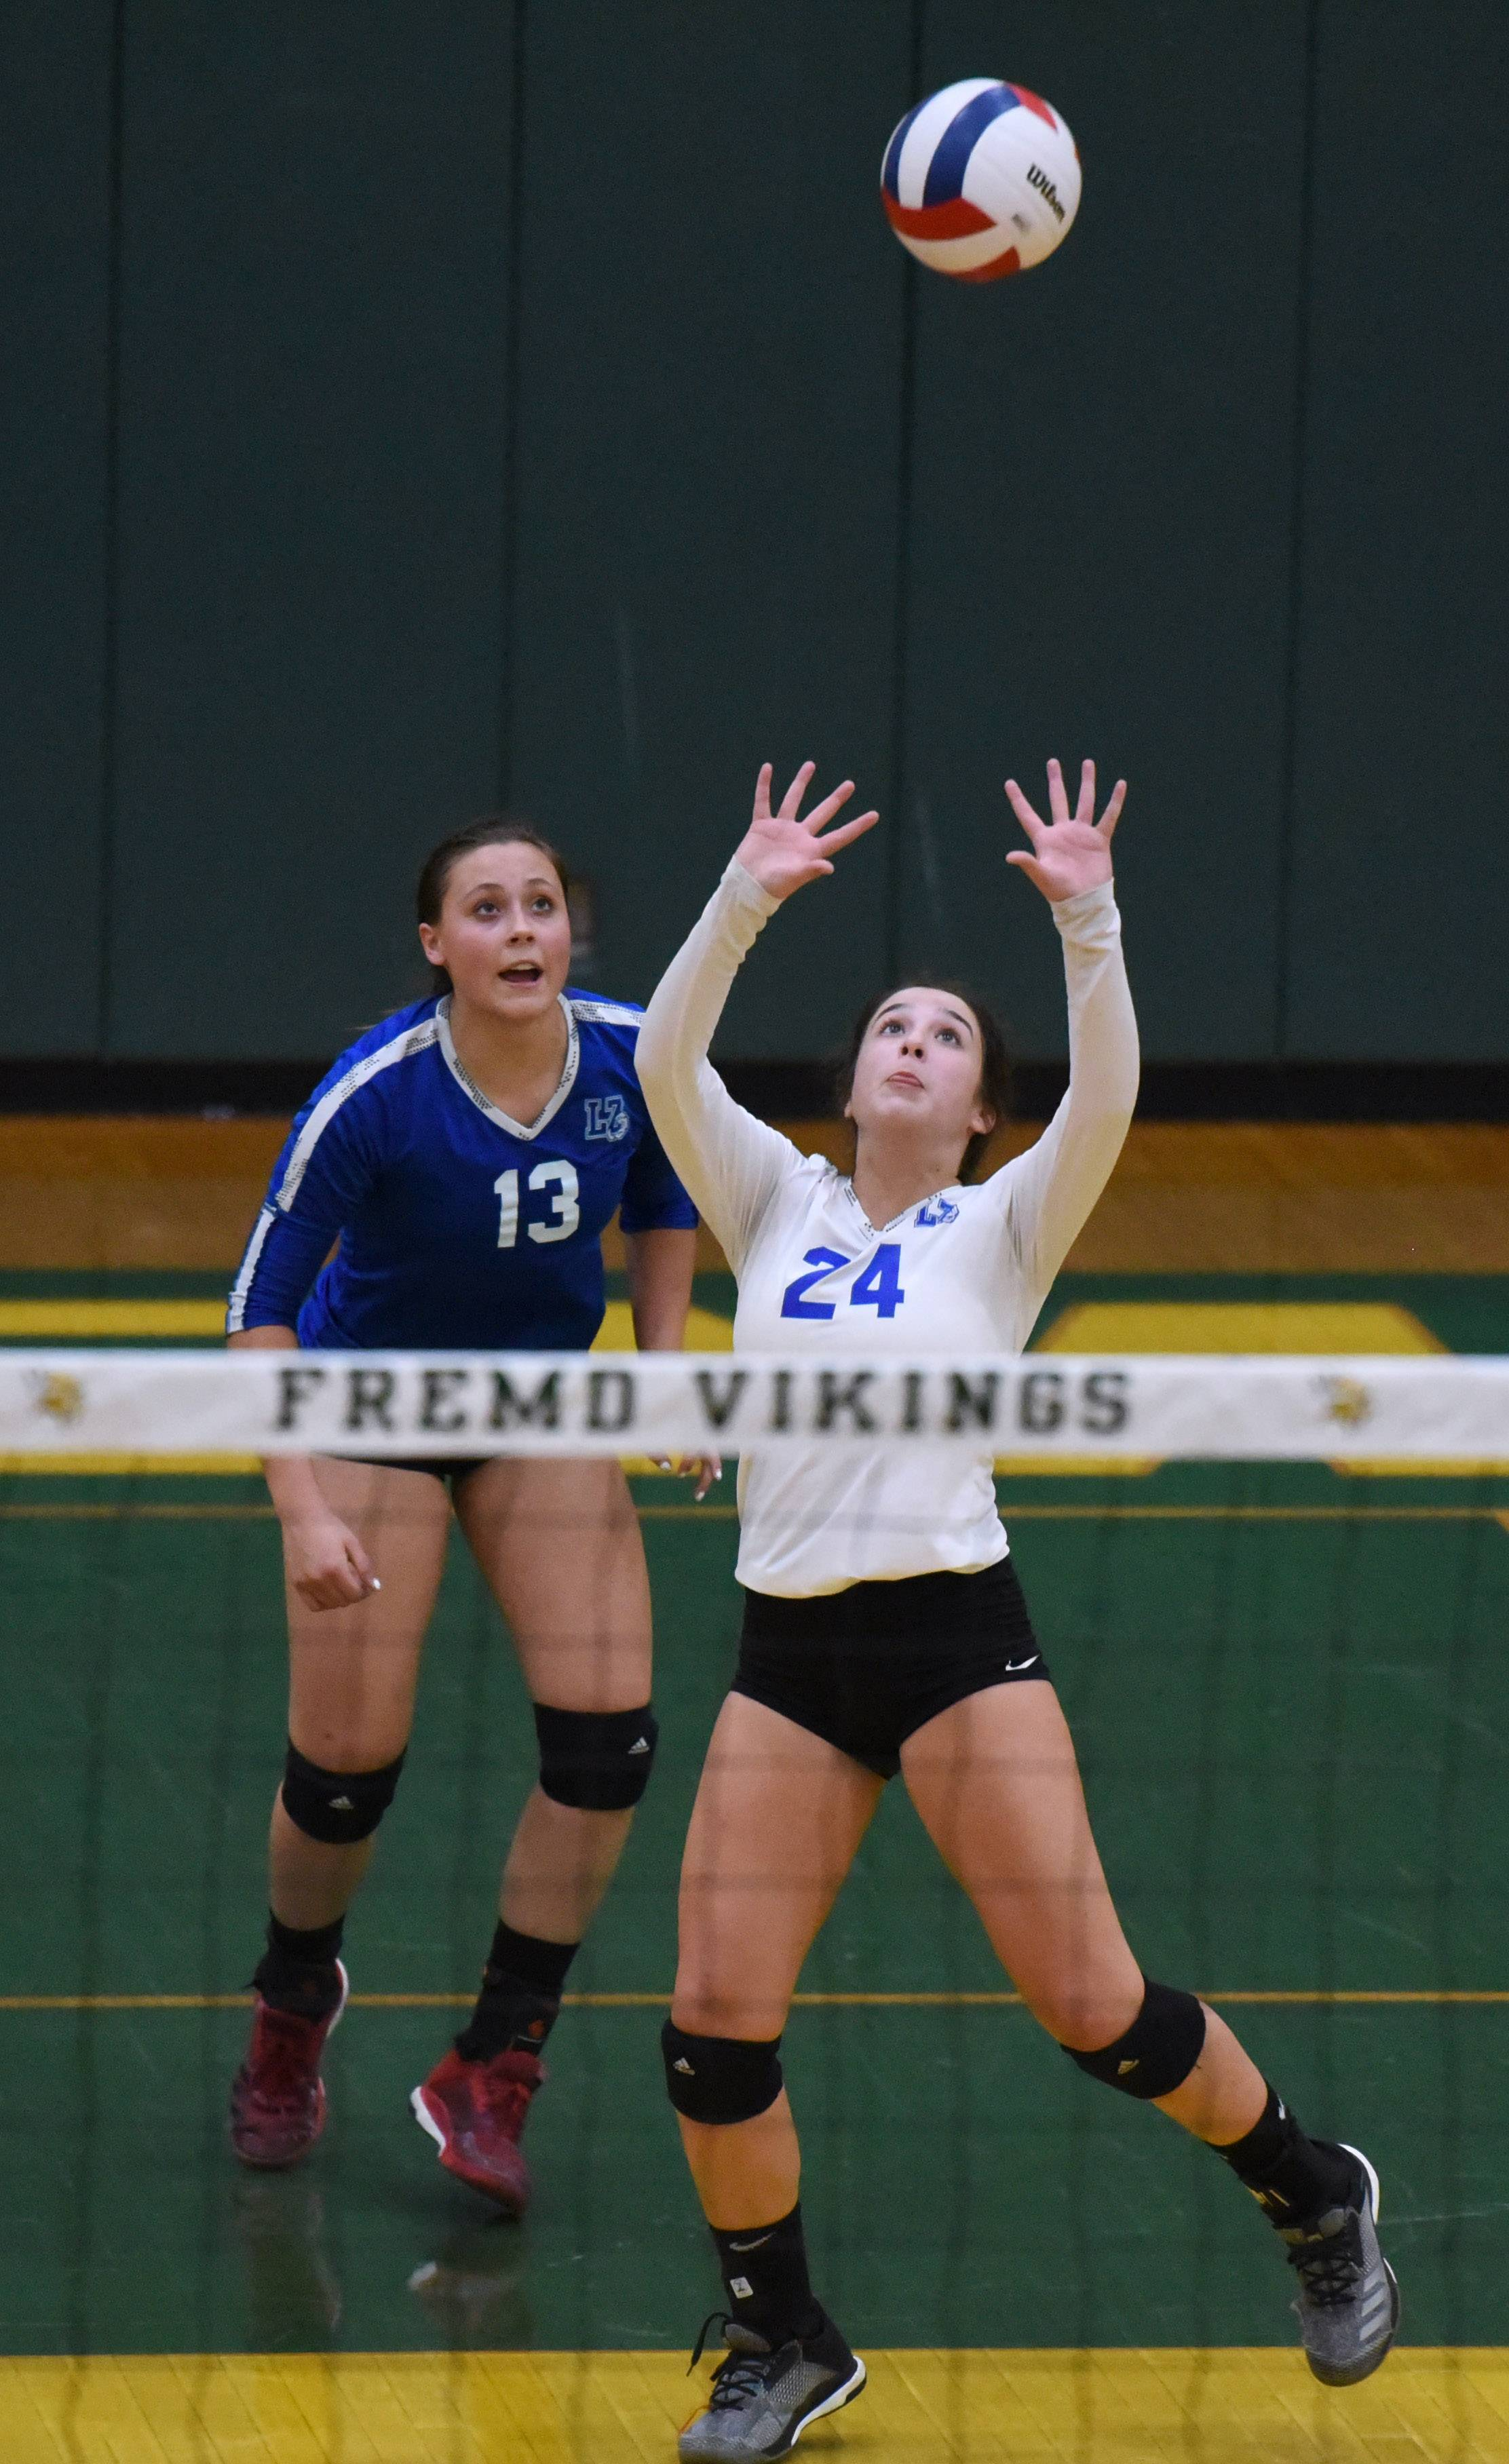 Girls volleyball: Fremd bounces back to beat Lake Zurich